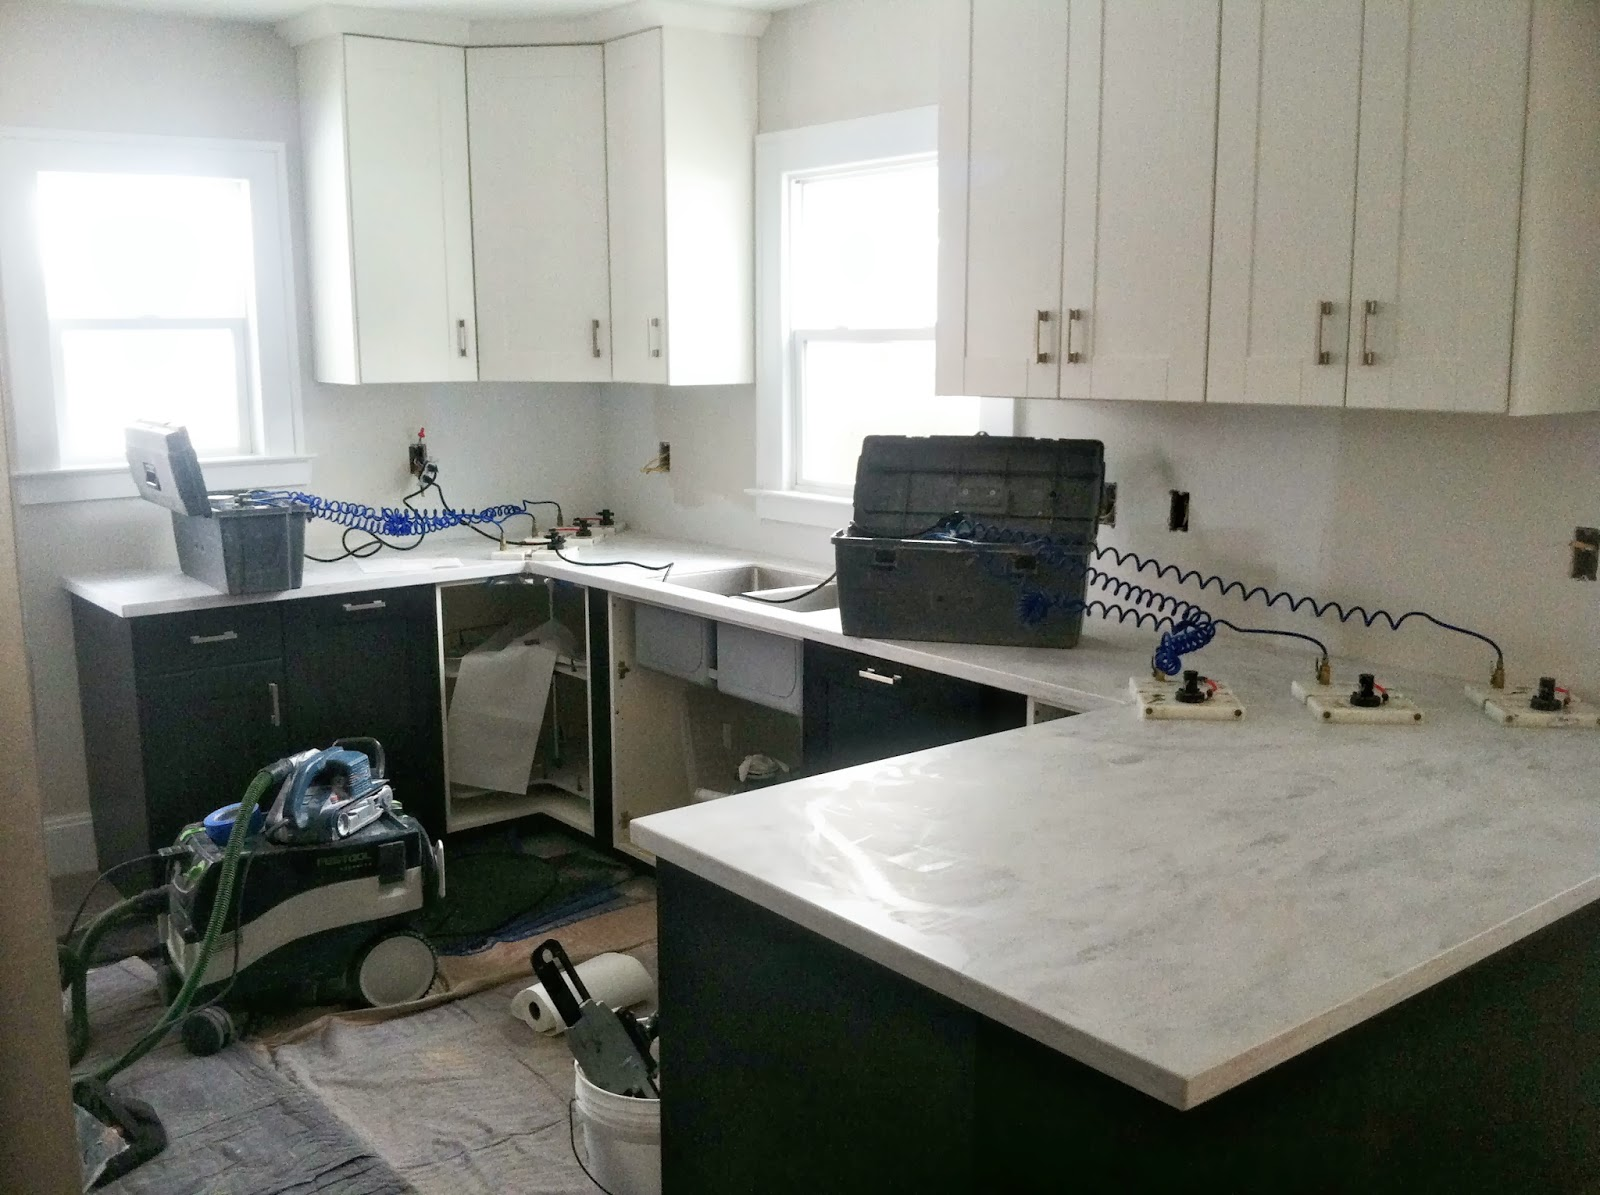 Kitchen Renovation Solid Surface Countertops Danks And Honey